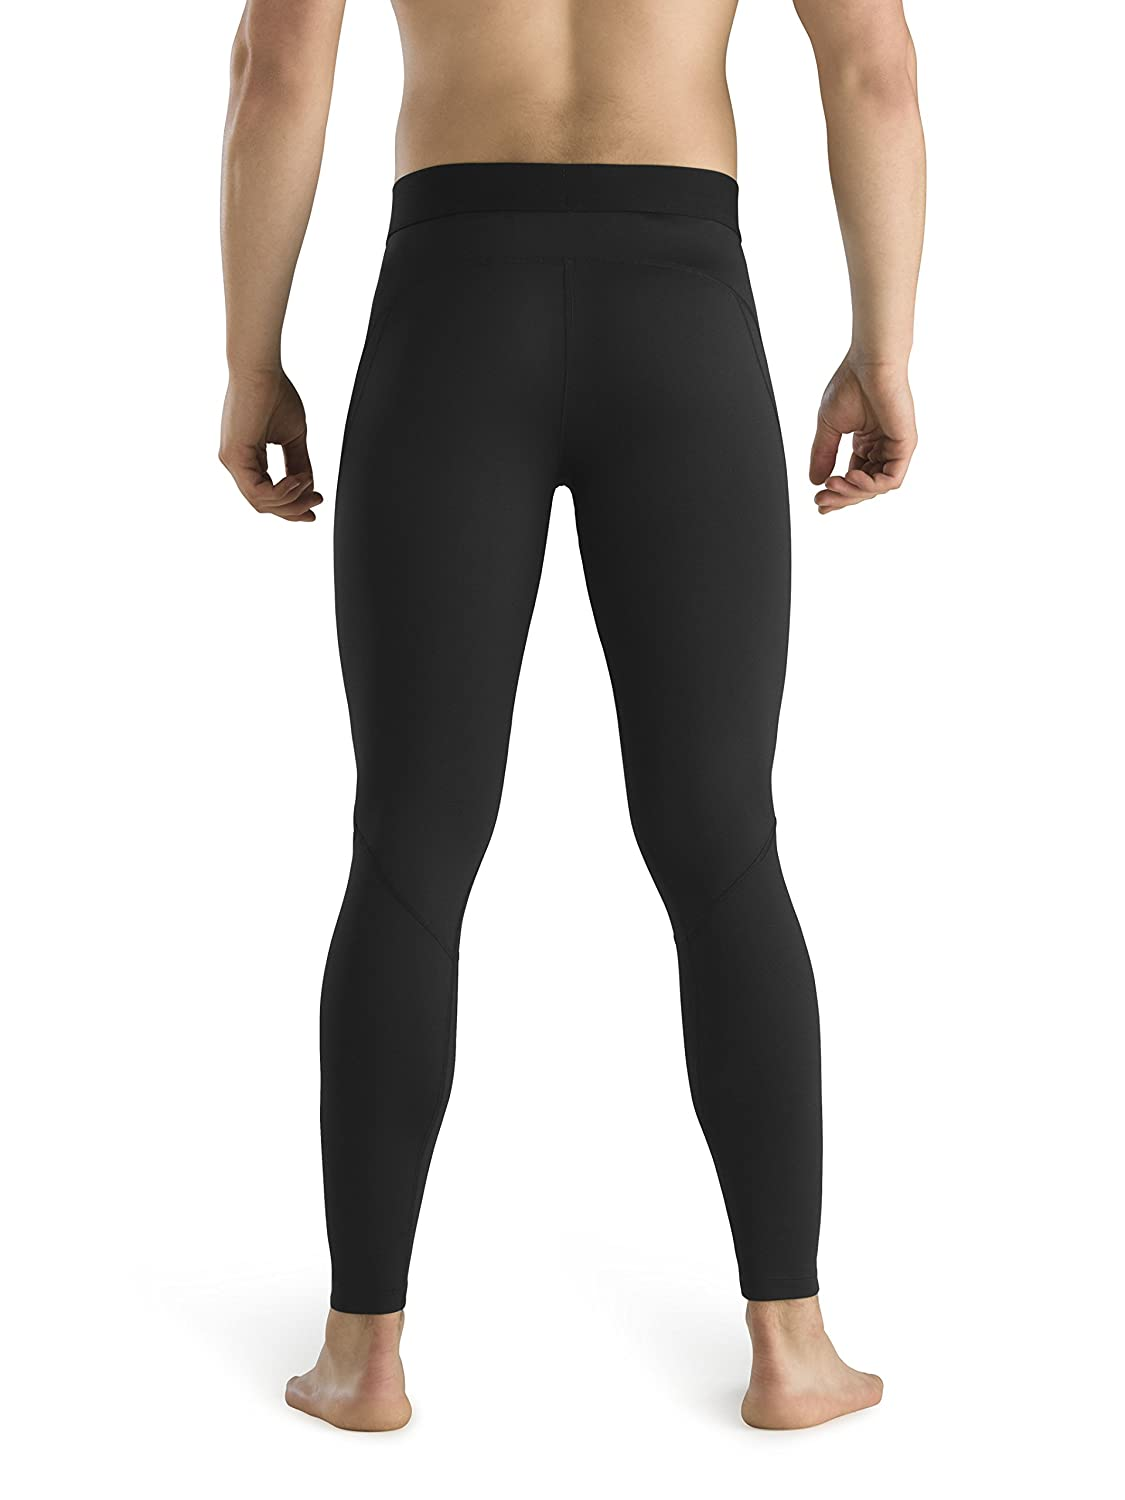 Saxx Underwear Mens Thermoflyte Tight Fly with Ballpark Pouch Support